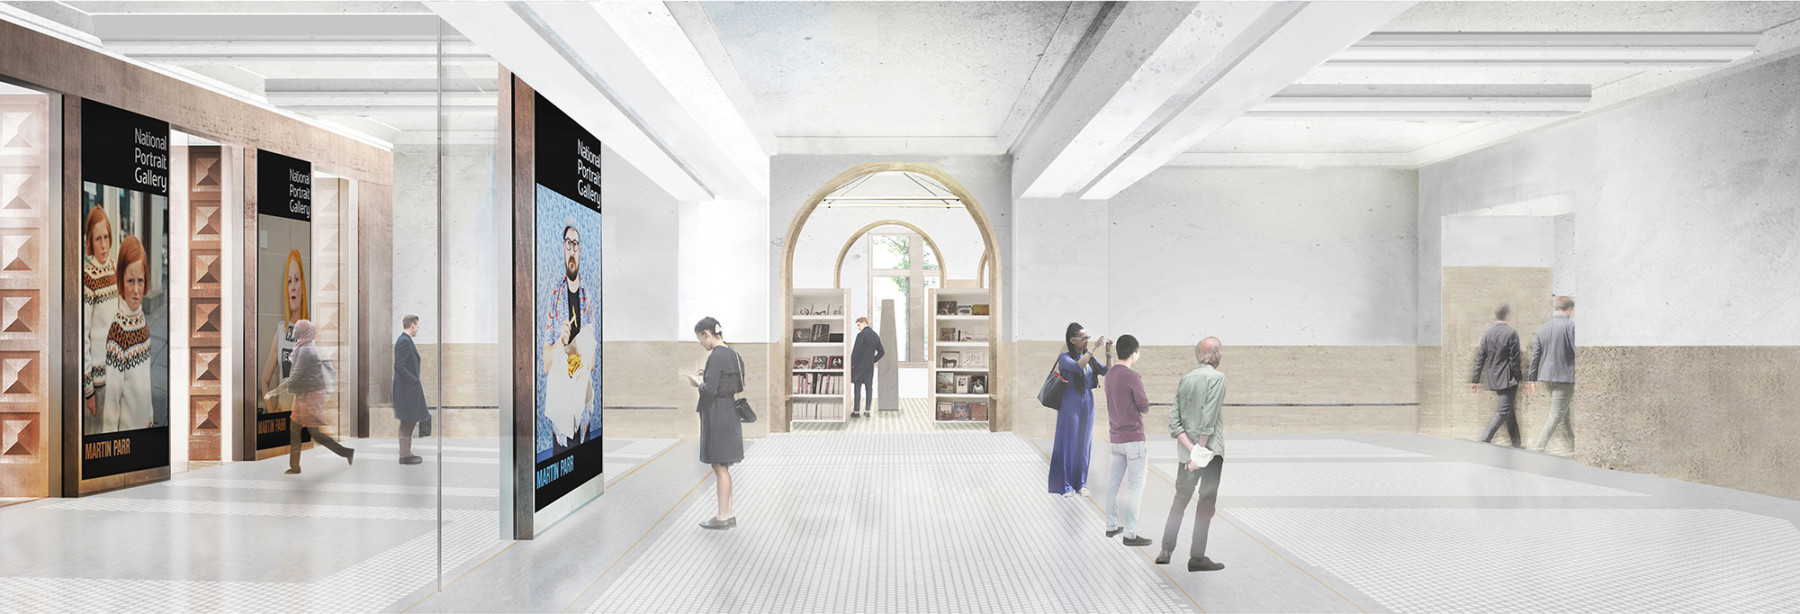 Jamie-Fobert-Architects visualisation-of-the-new-entrance-hall,-looking-towards-the-new-shop1